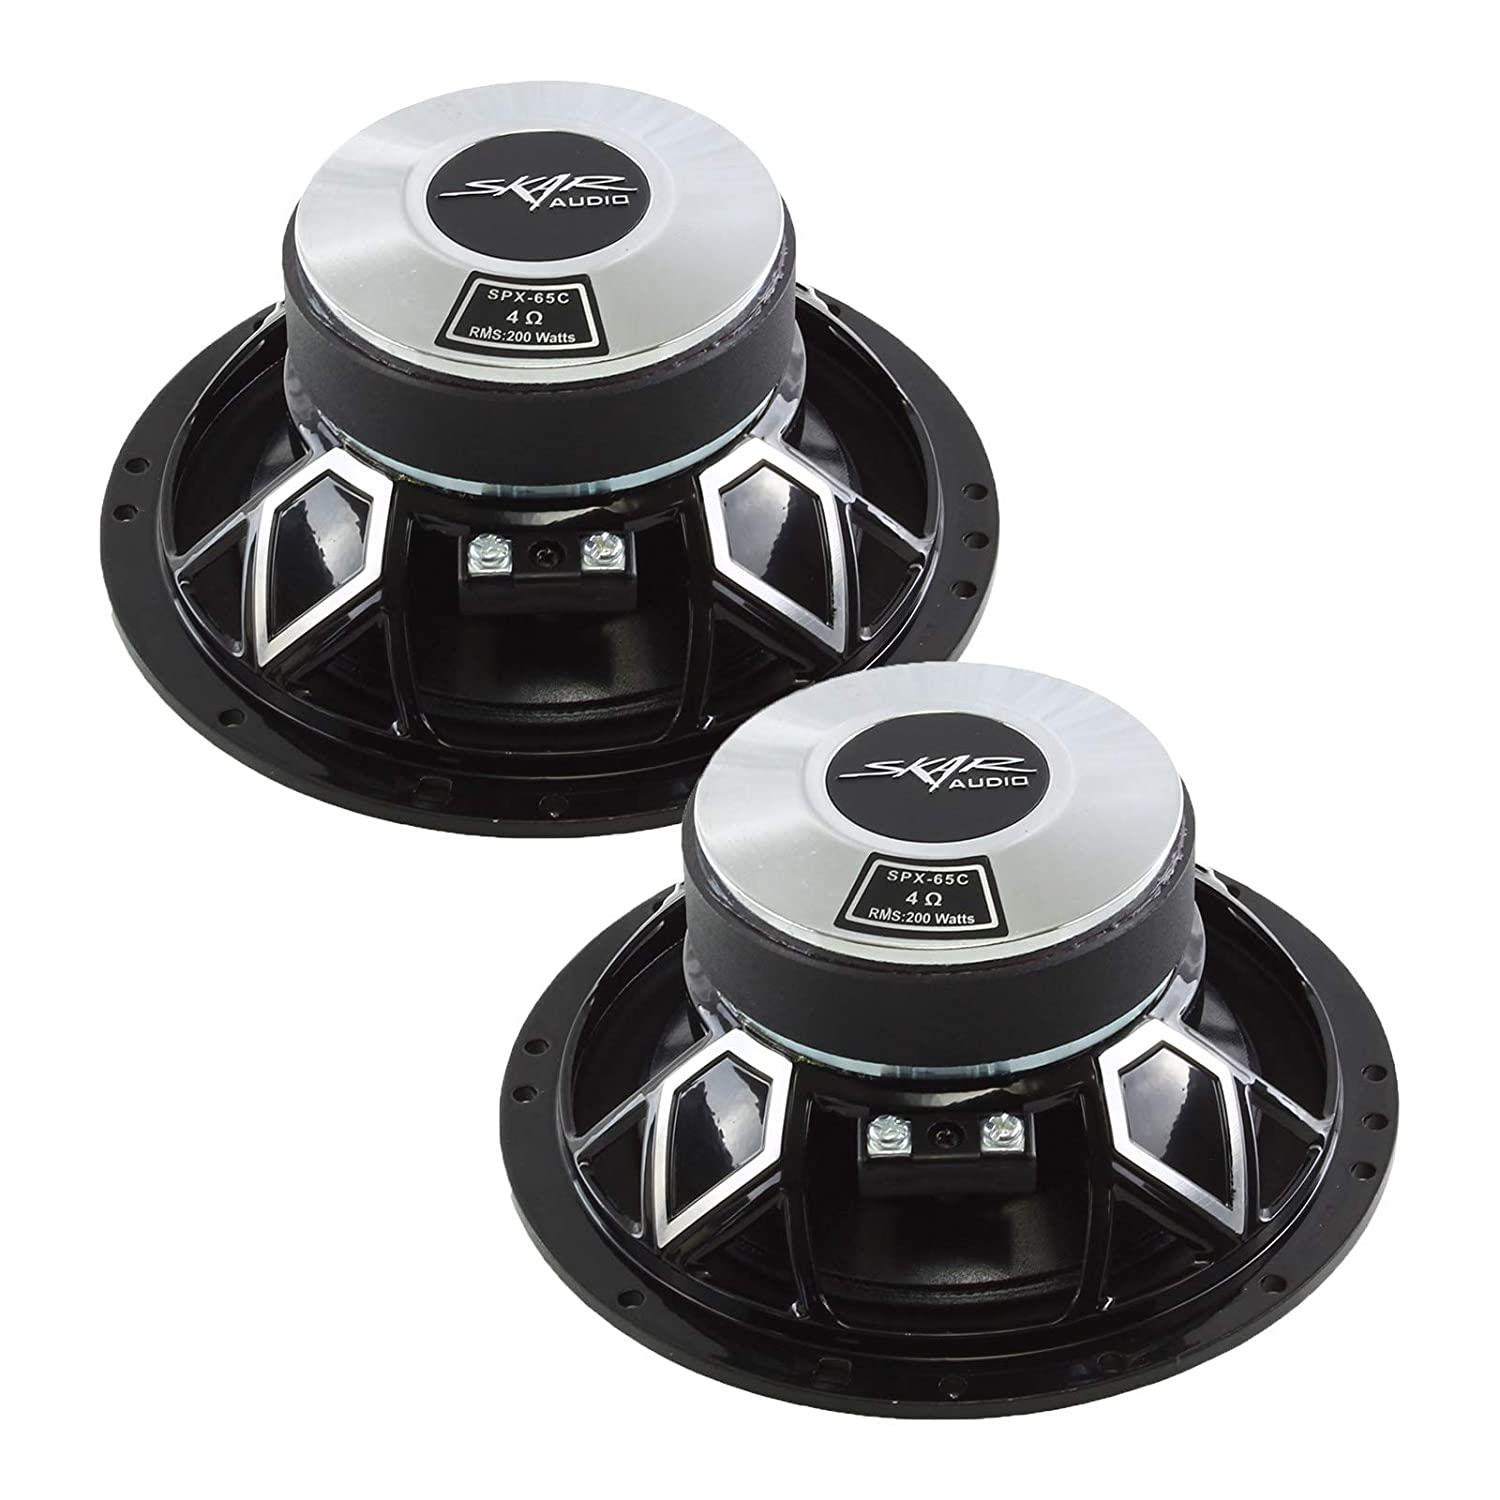 Skar Audio SPX-65C 6.5 2-Way High Performance Component Speaker System Set of 2